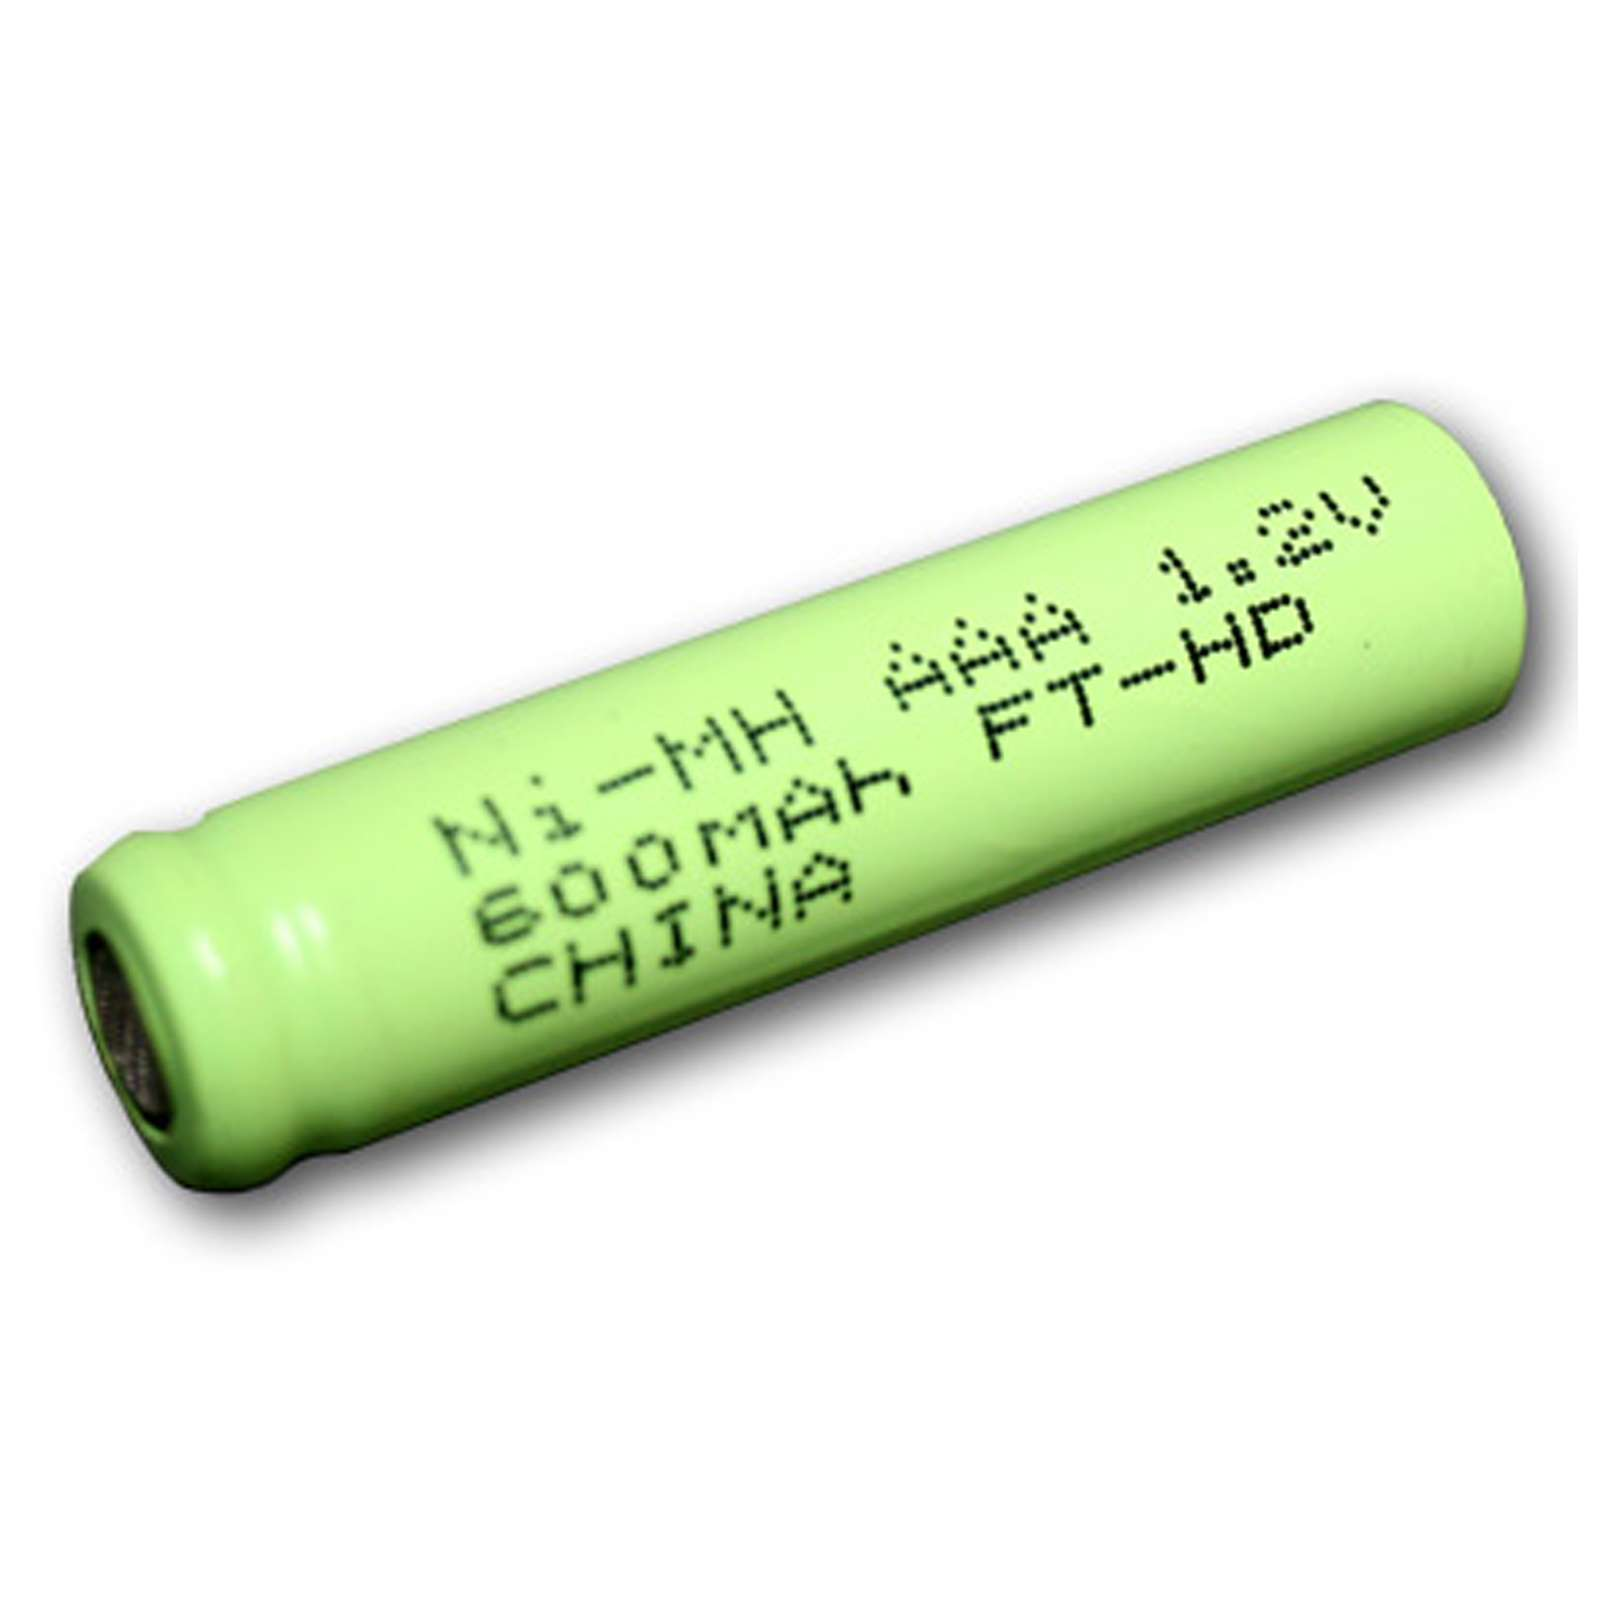 exell 1 2v 600mah nimh aaa rechargeable battery flat top fast usa ship ebay. Black Bedroom Furniture Sets. Home Design Ideas